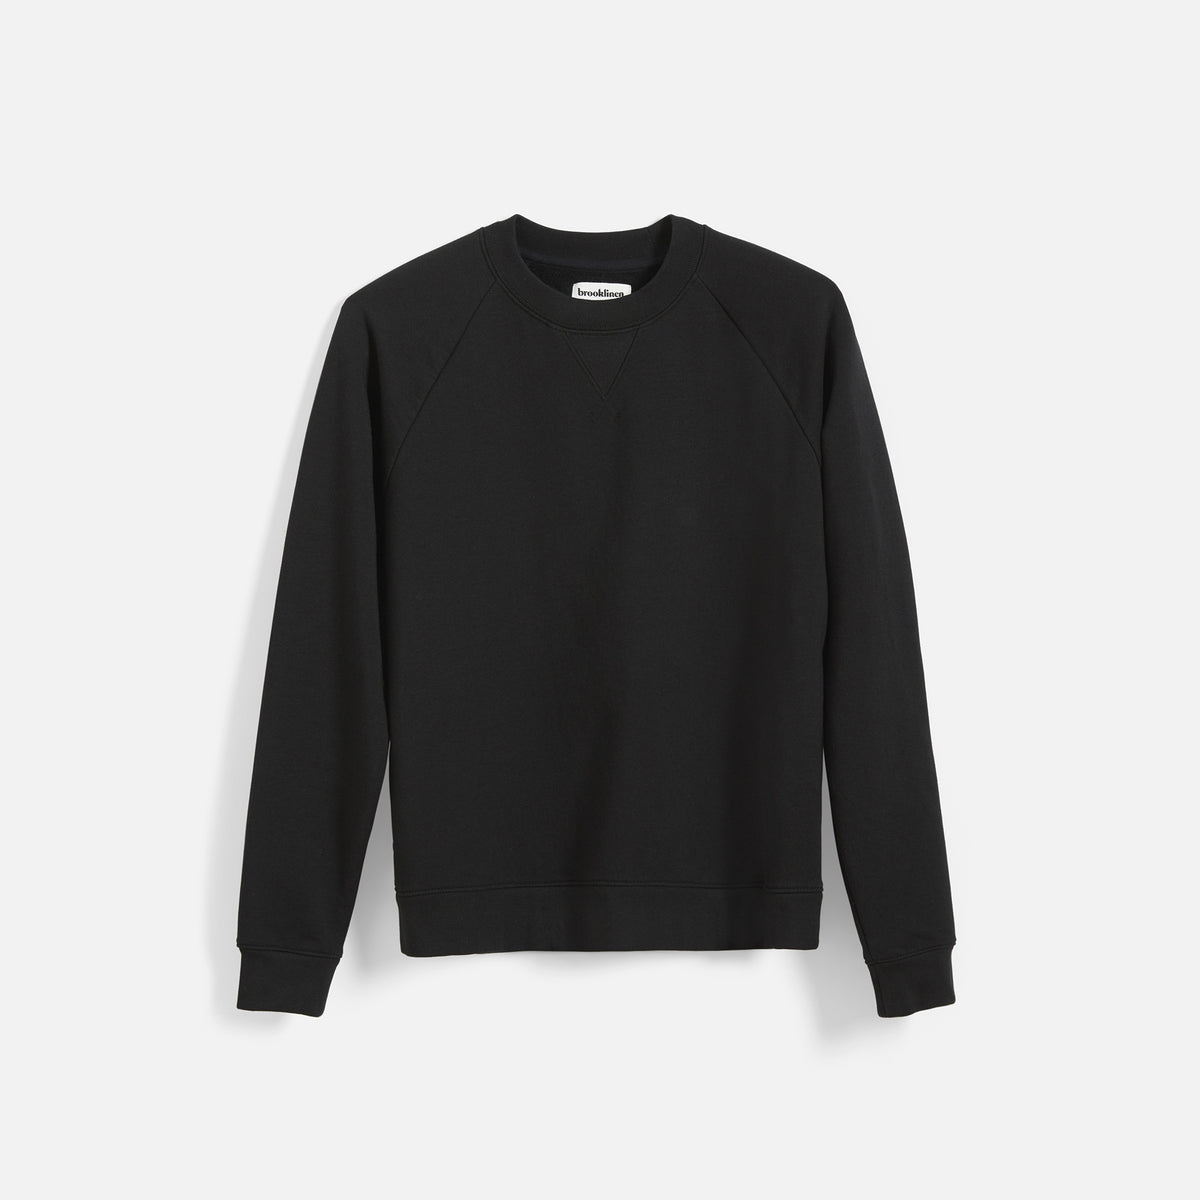 Willow Sweatshirt / Black